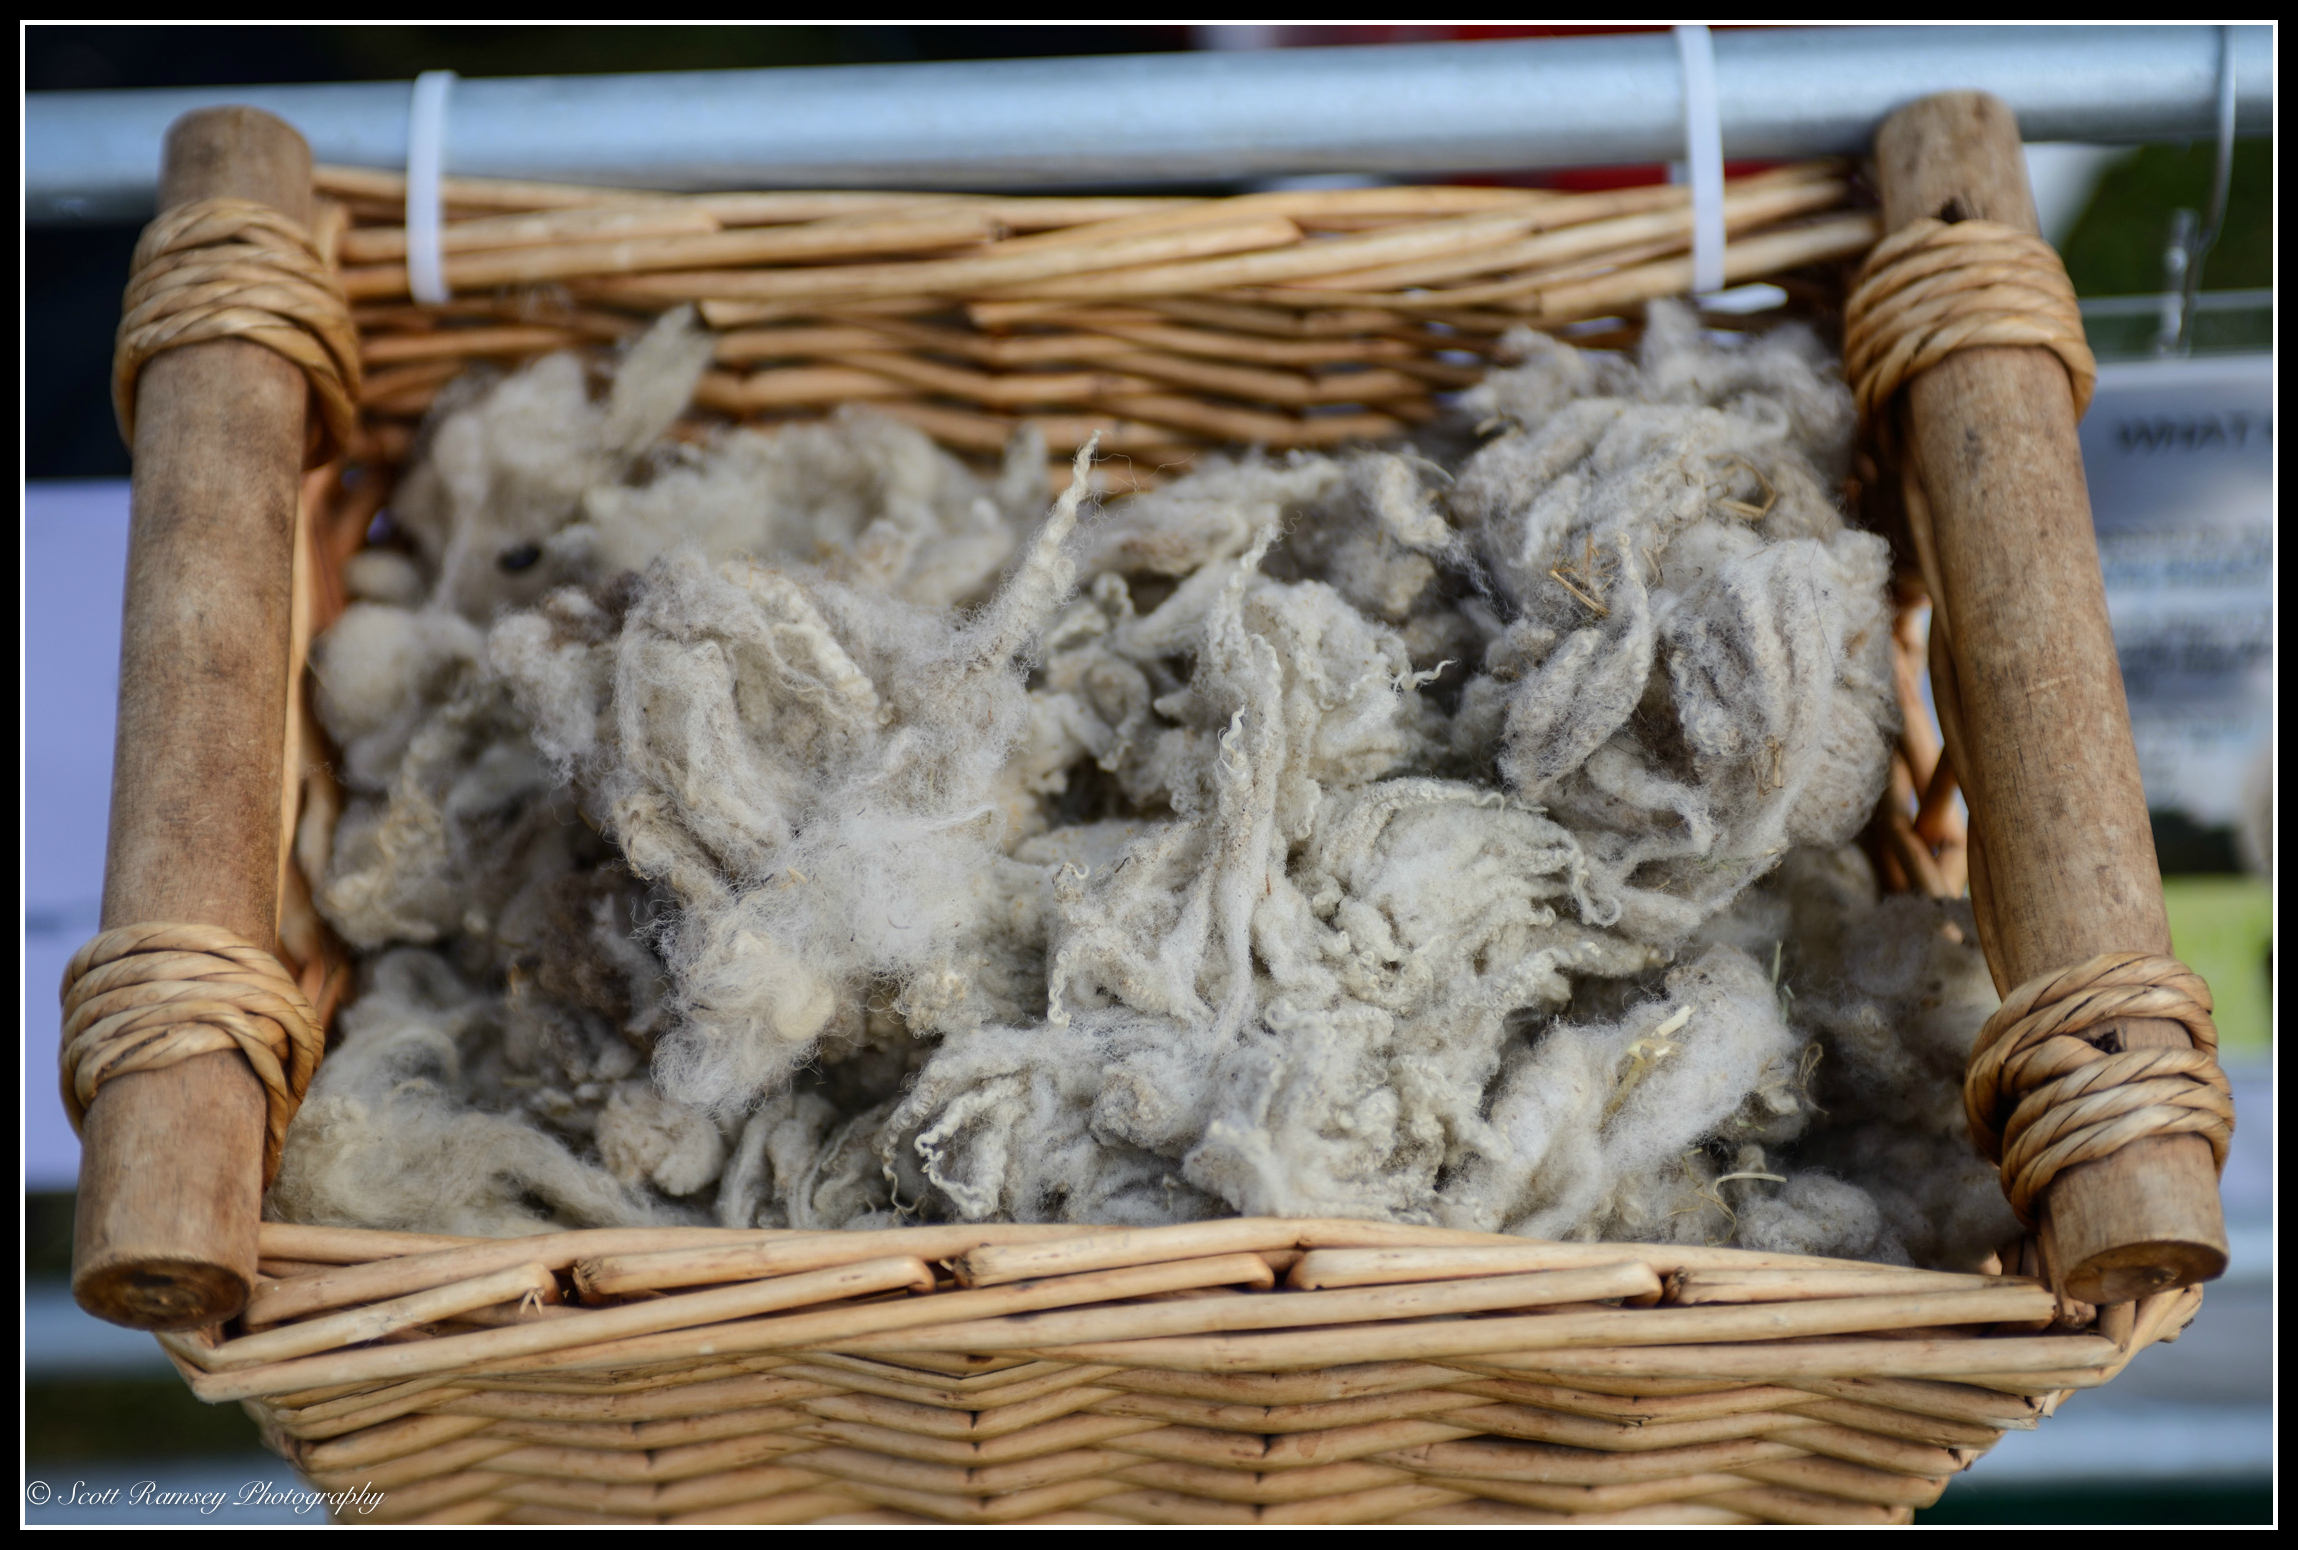 A basket containing sheeps fleece at the Findon Sheep Fair in West Sussex.